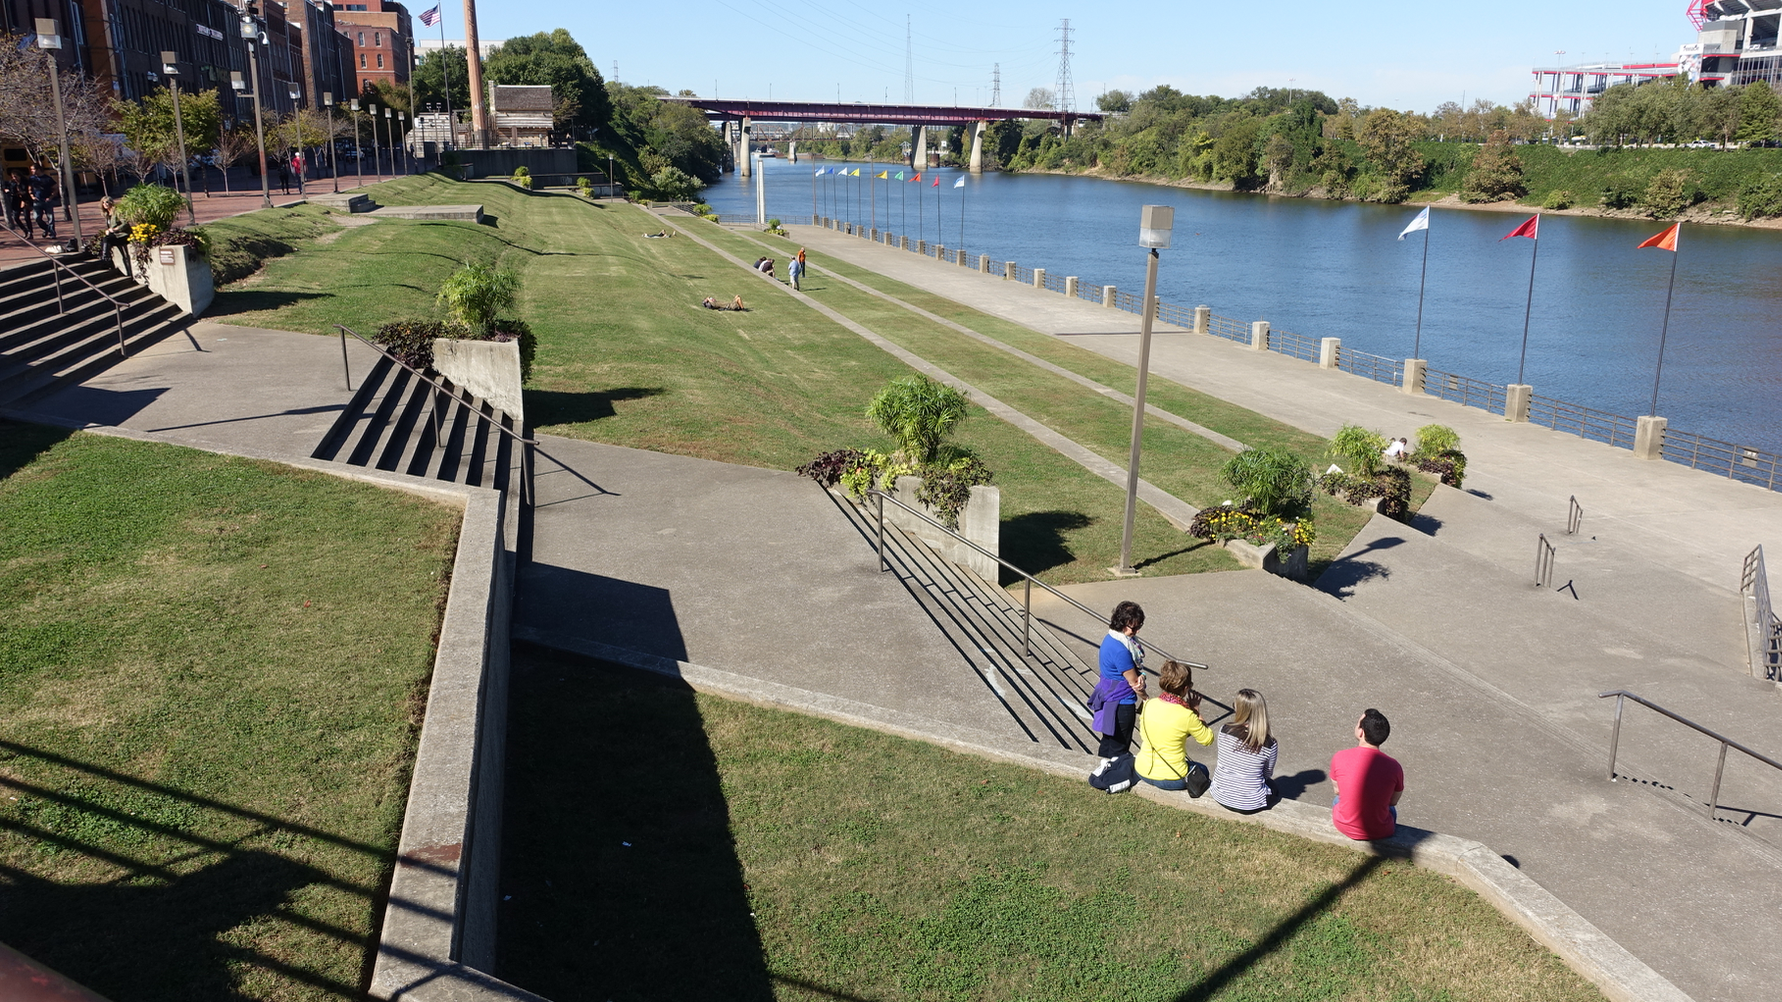 Nashville has a lovely green beach along the Cumberland River, but it lacks the pathways along the river to link the City Centre to rest of the city.